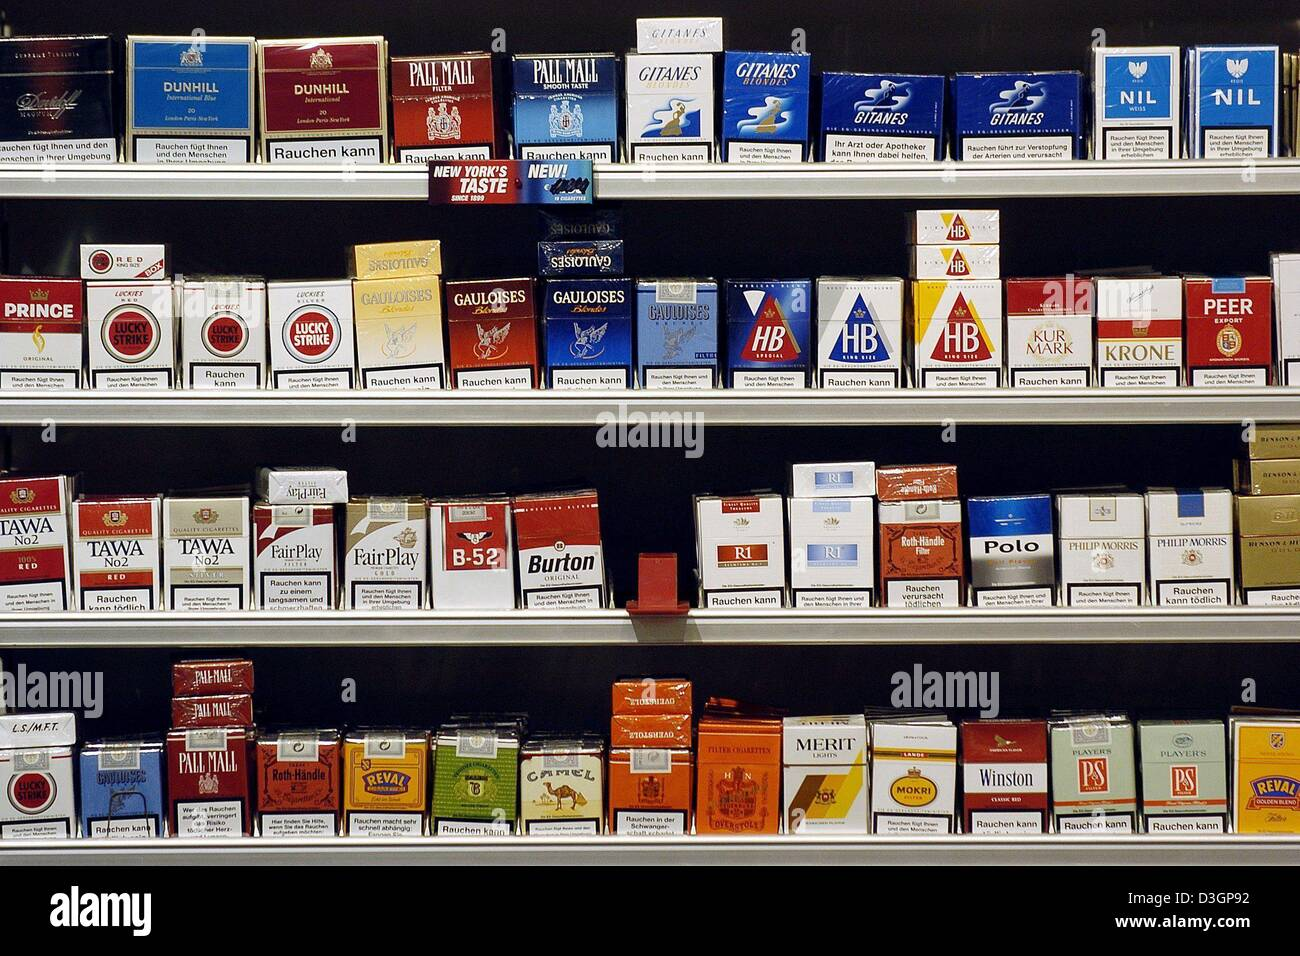 Cost of a pack of cigarettes in Kansas 2018